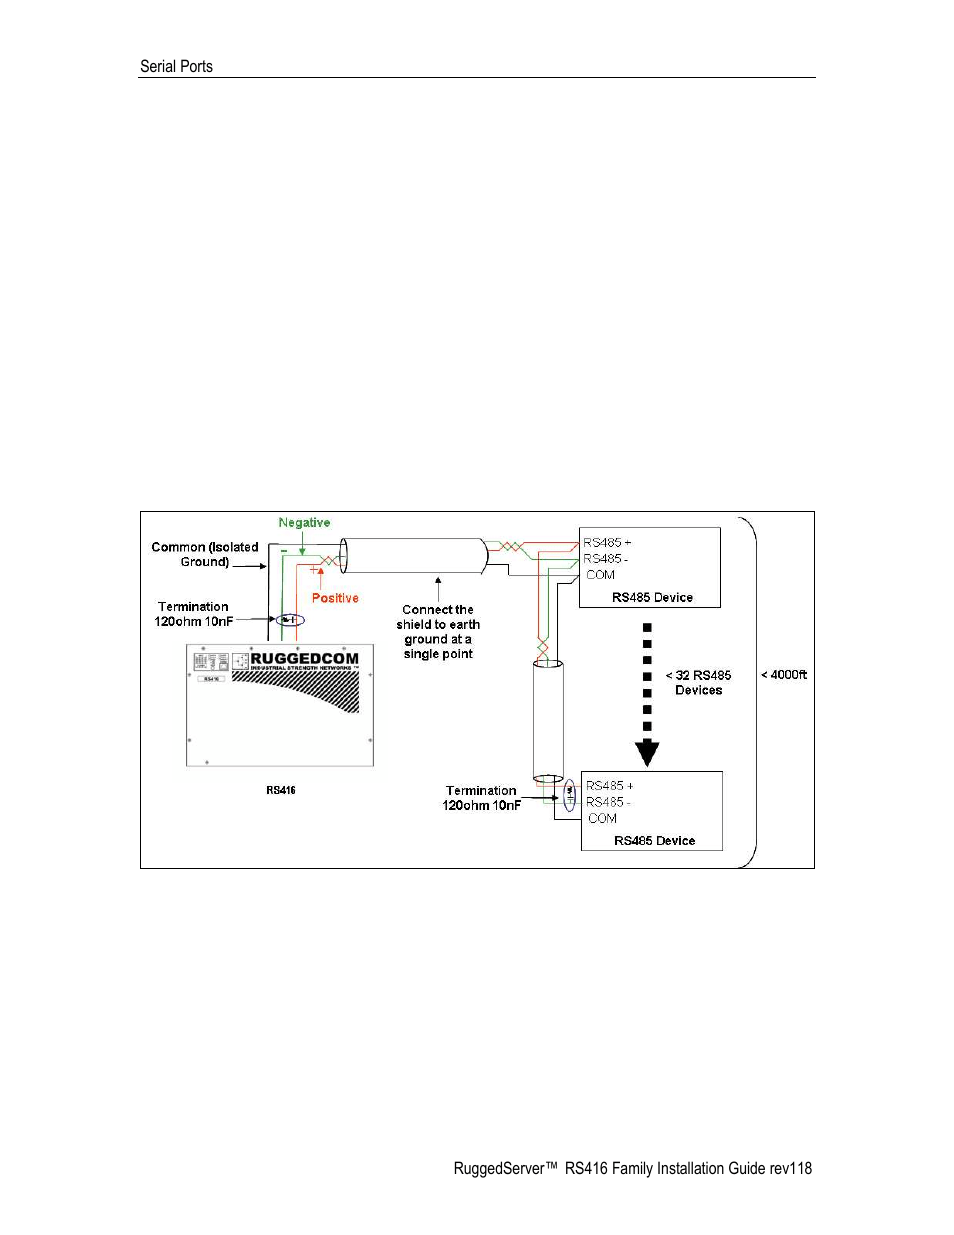 Cat 5 Cable Wiring Diagram Pdf Likewise Cat 5 Cable Wiring Diagram